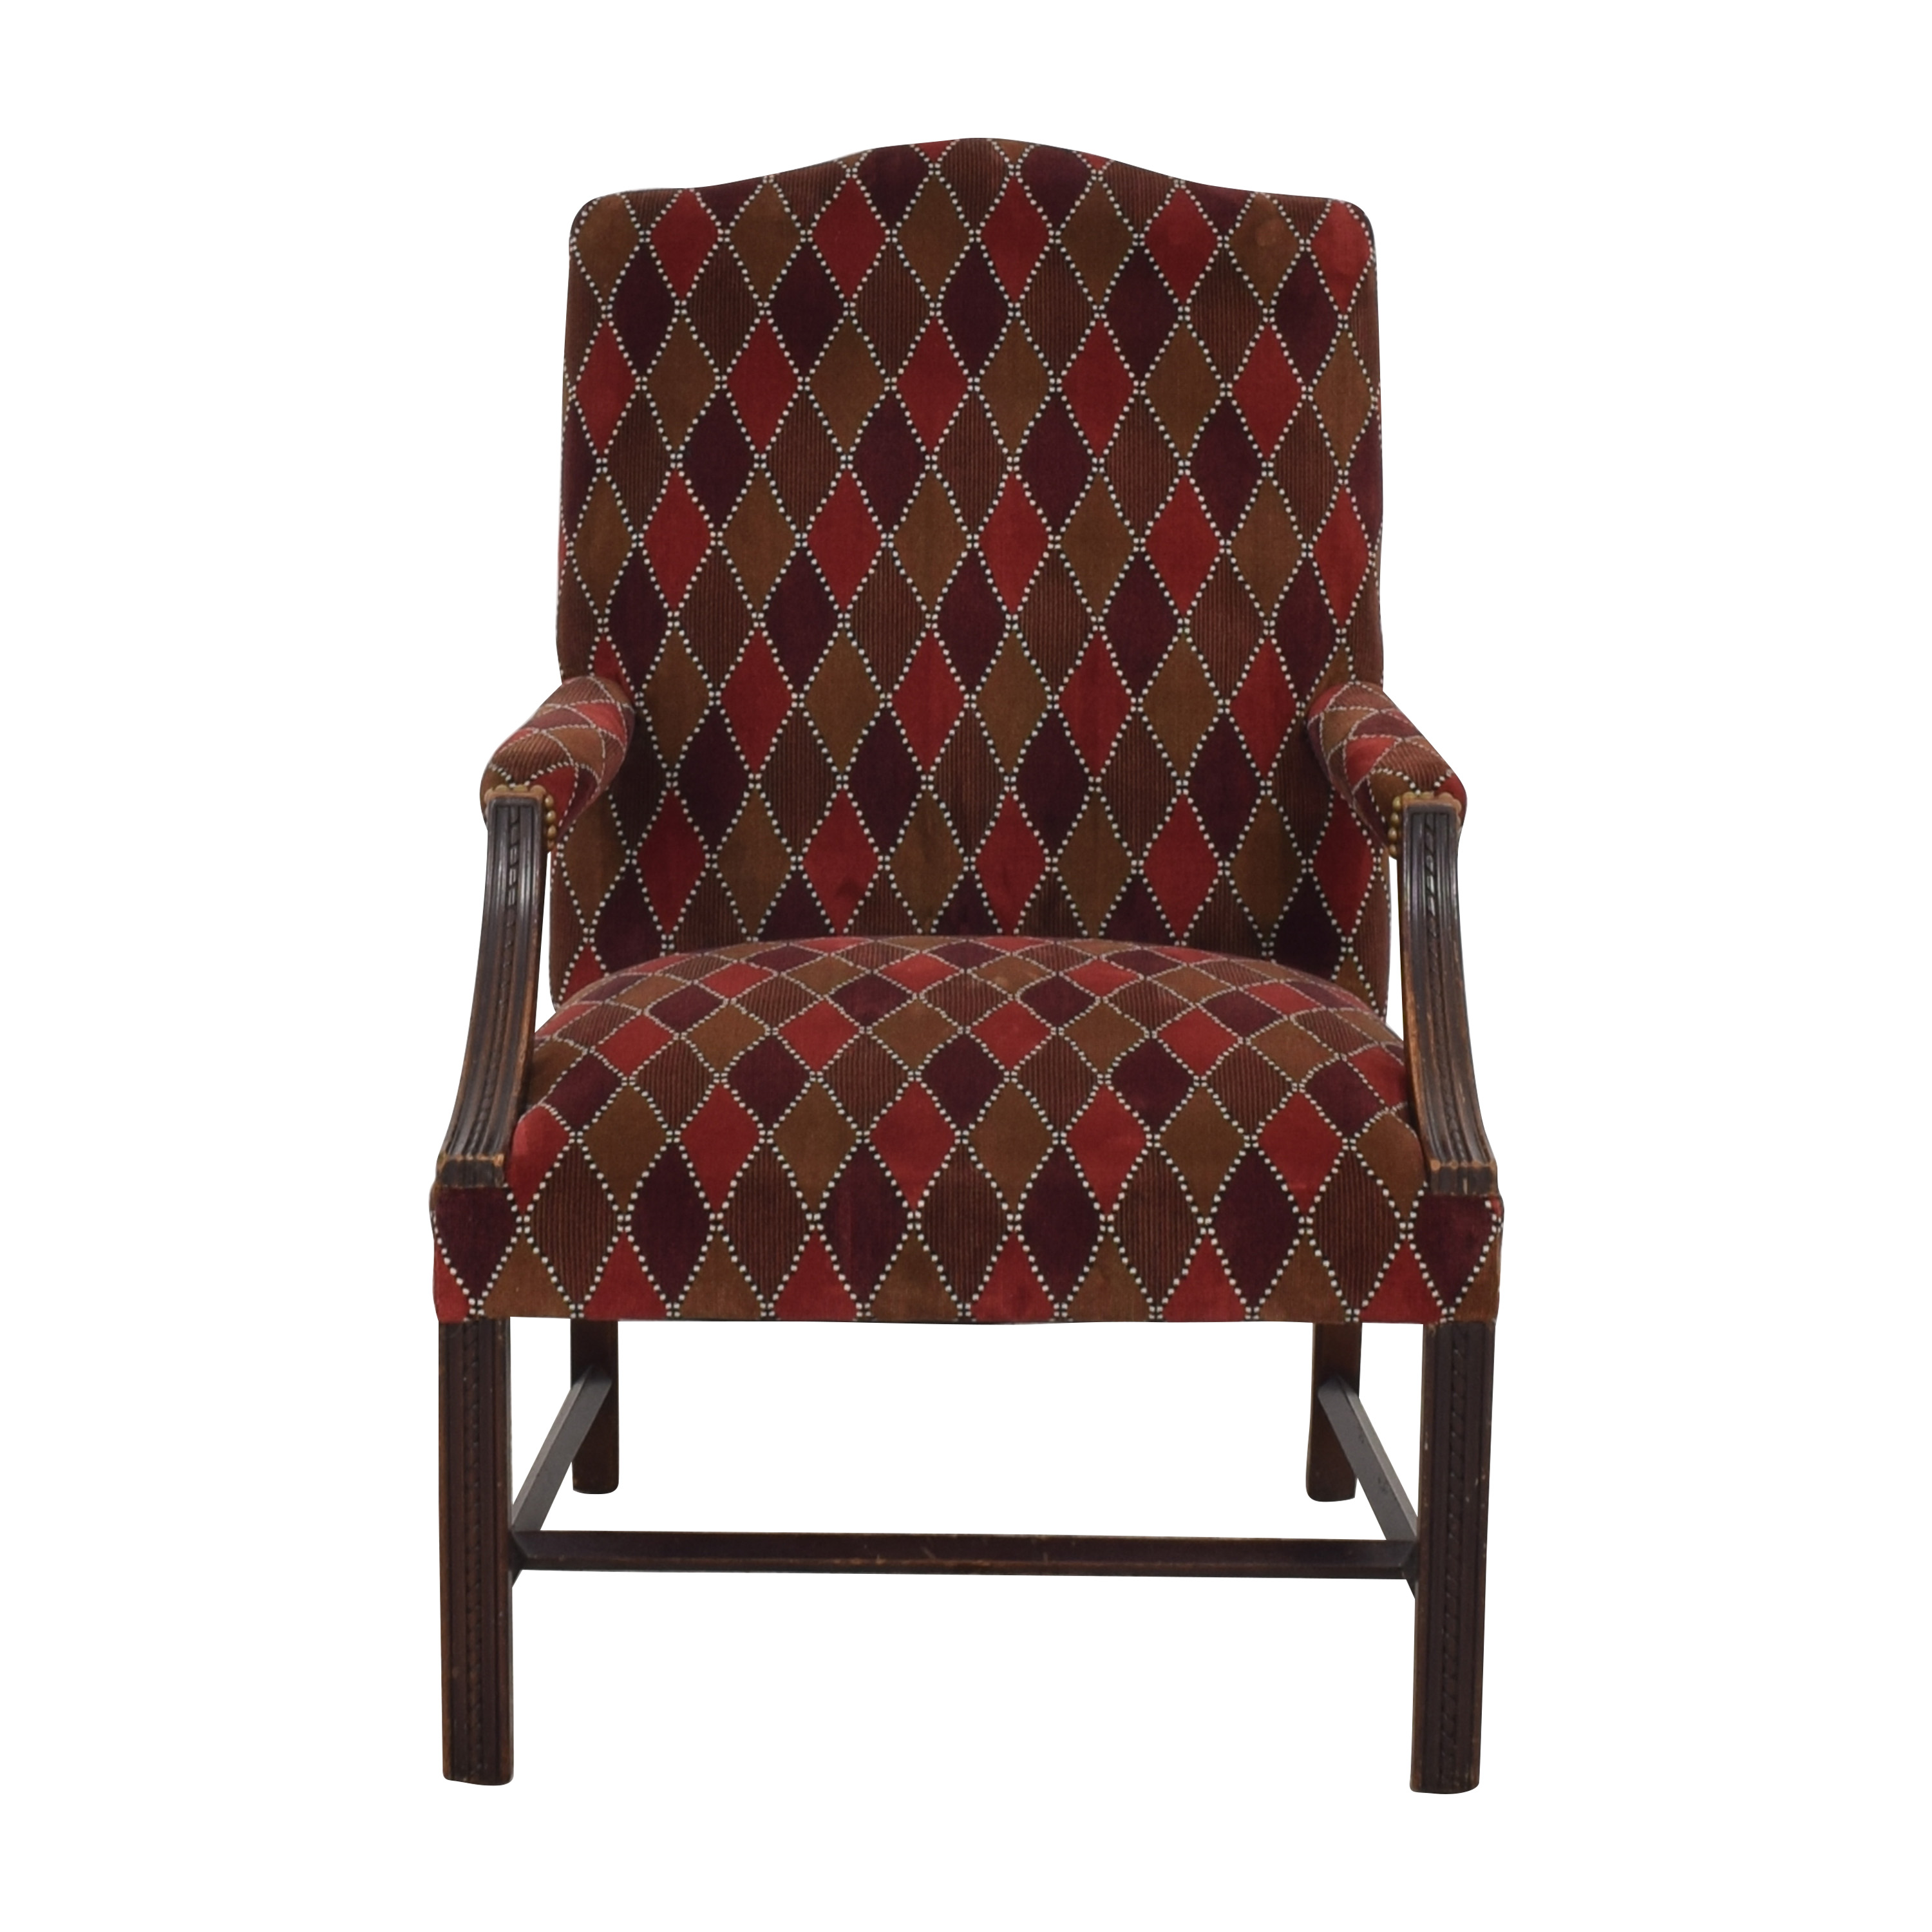 Upholstered Occasional Chair for sale